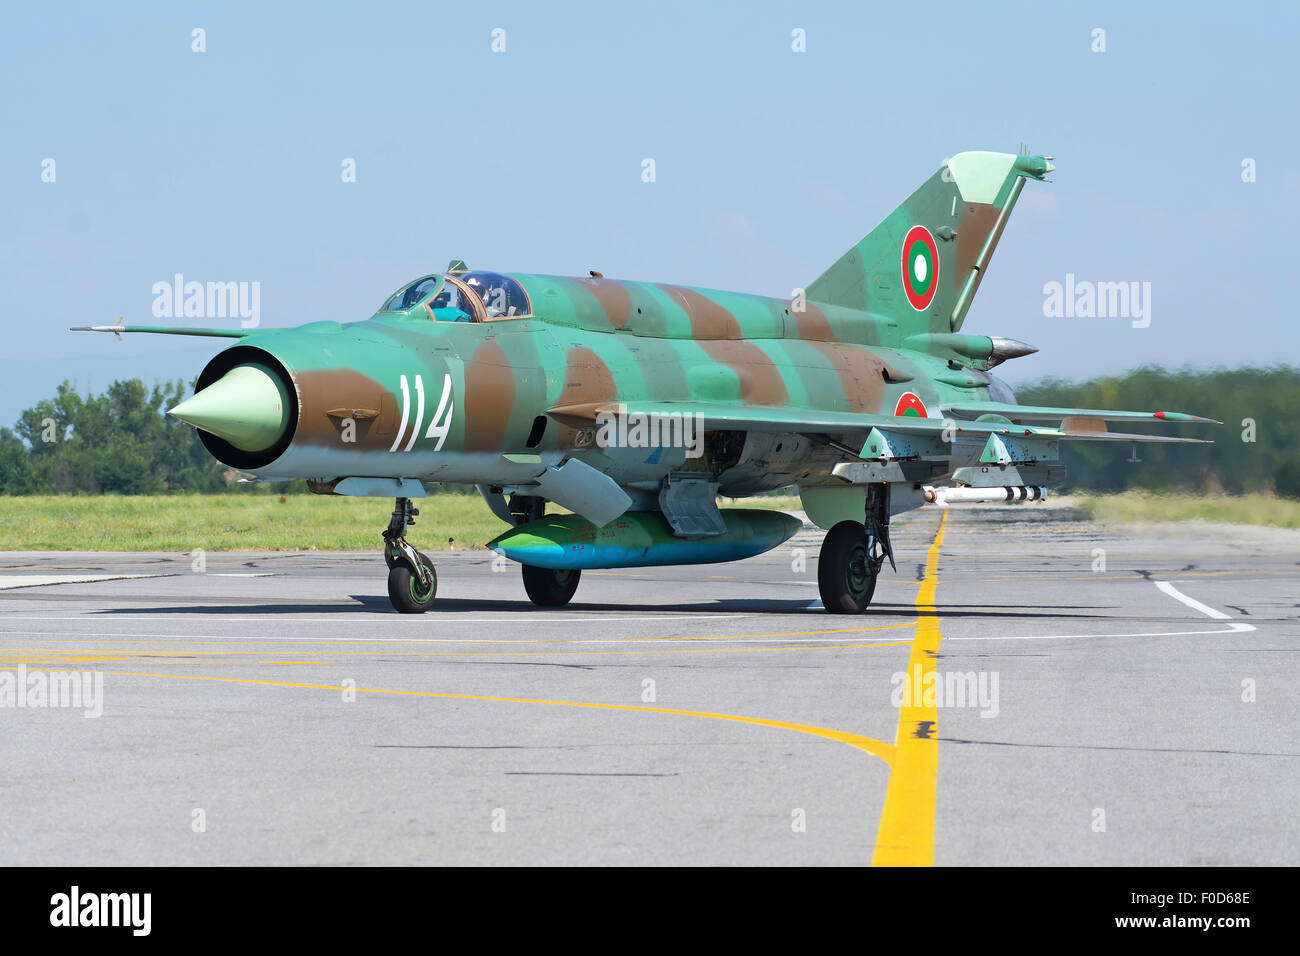 Bulgarian Air Force MiG-21bis taxiing at Graf Ignatievo Air Base, Bulgaria, during Exercise Thracian Star 2015. - Stock Image